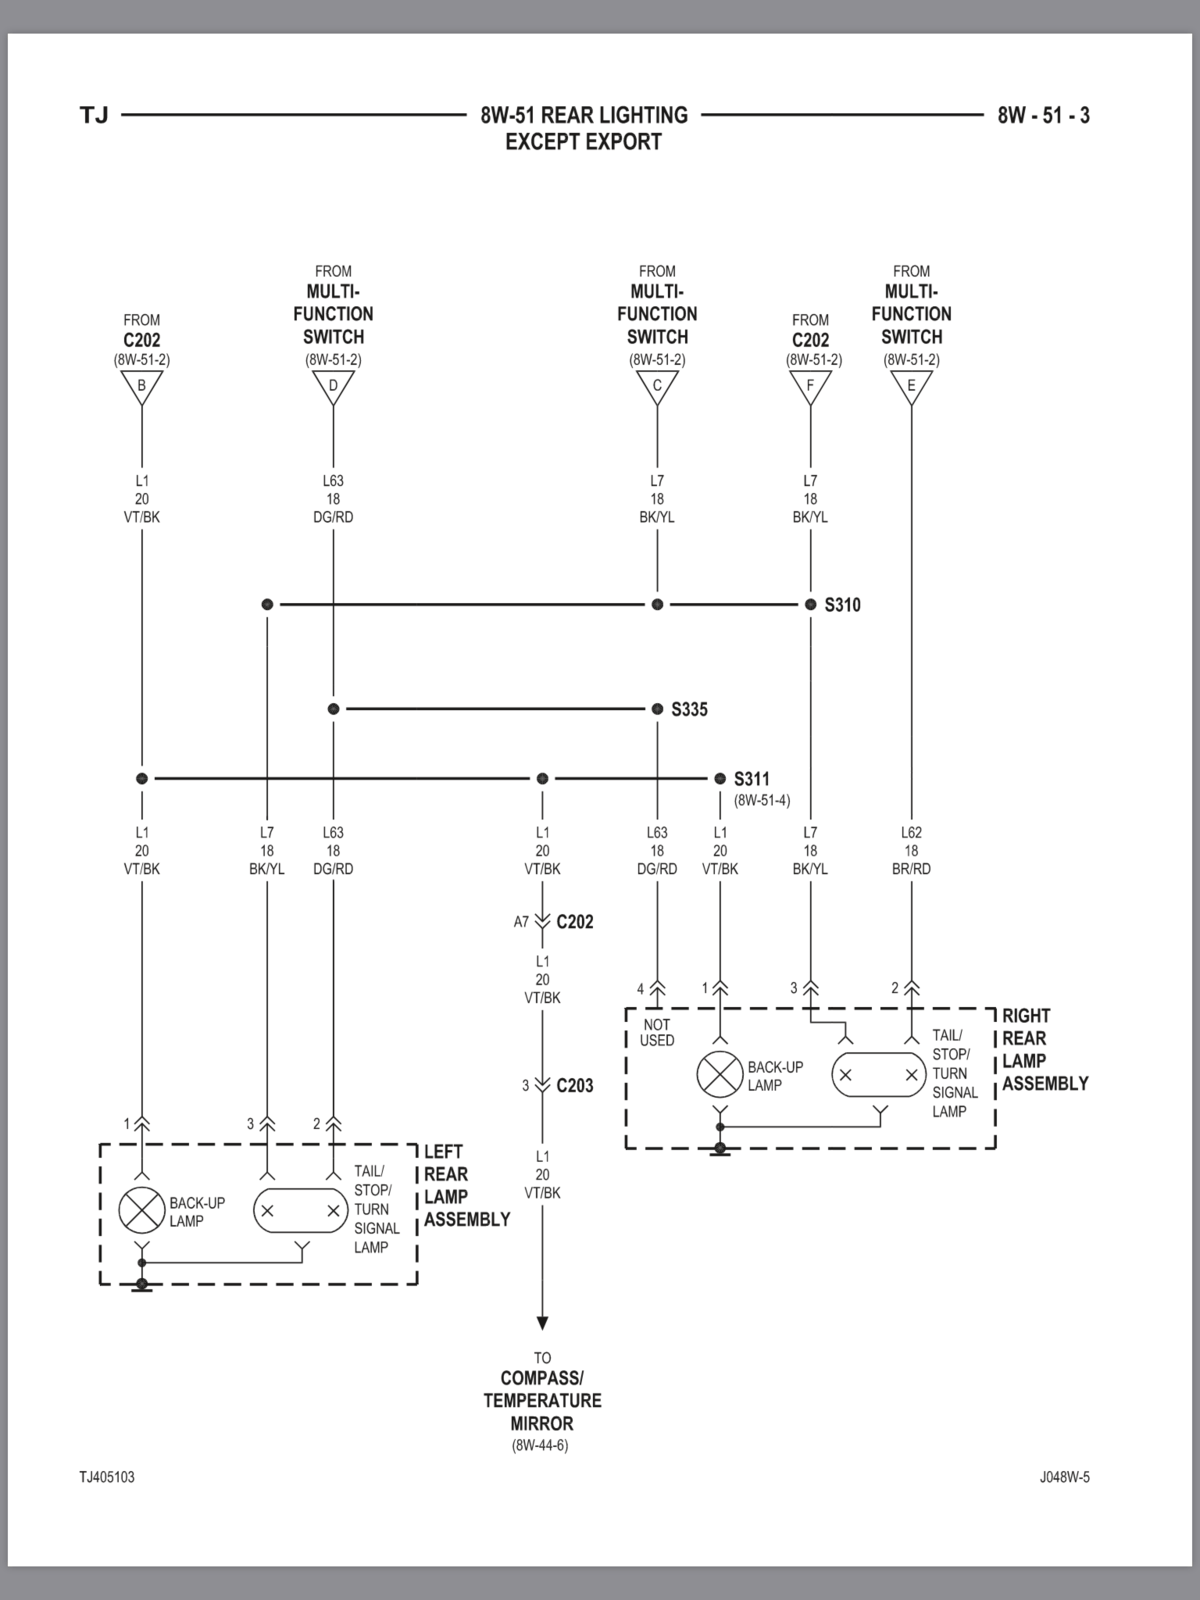 DIAGRAM] 2007 Jeep Wrangler Factory Wiring Diagram FULL Version HD Quality Wiring  Diagram - IPHONEPREMIERDOWNLOADS.LOGECO.FRlogeco.fr